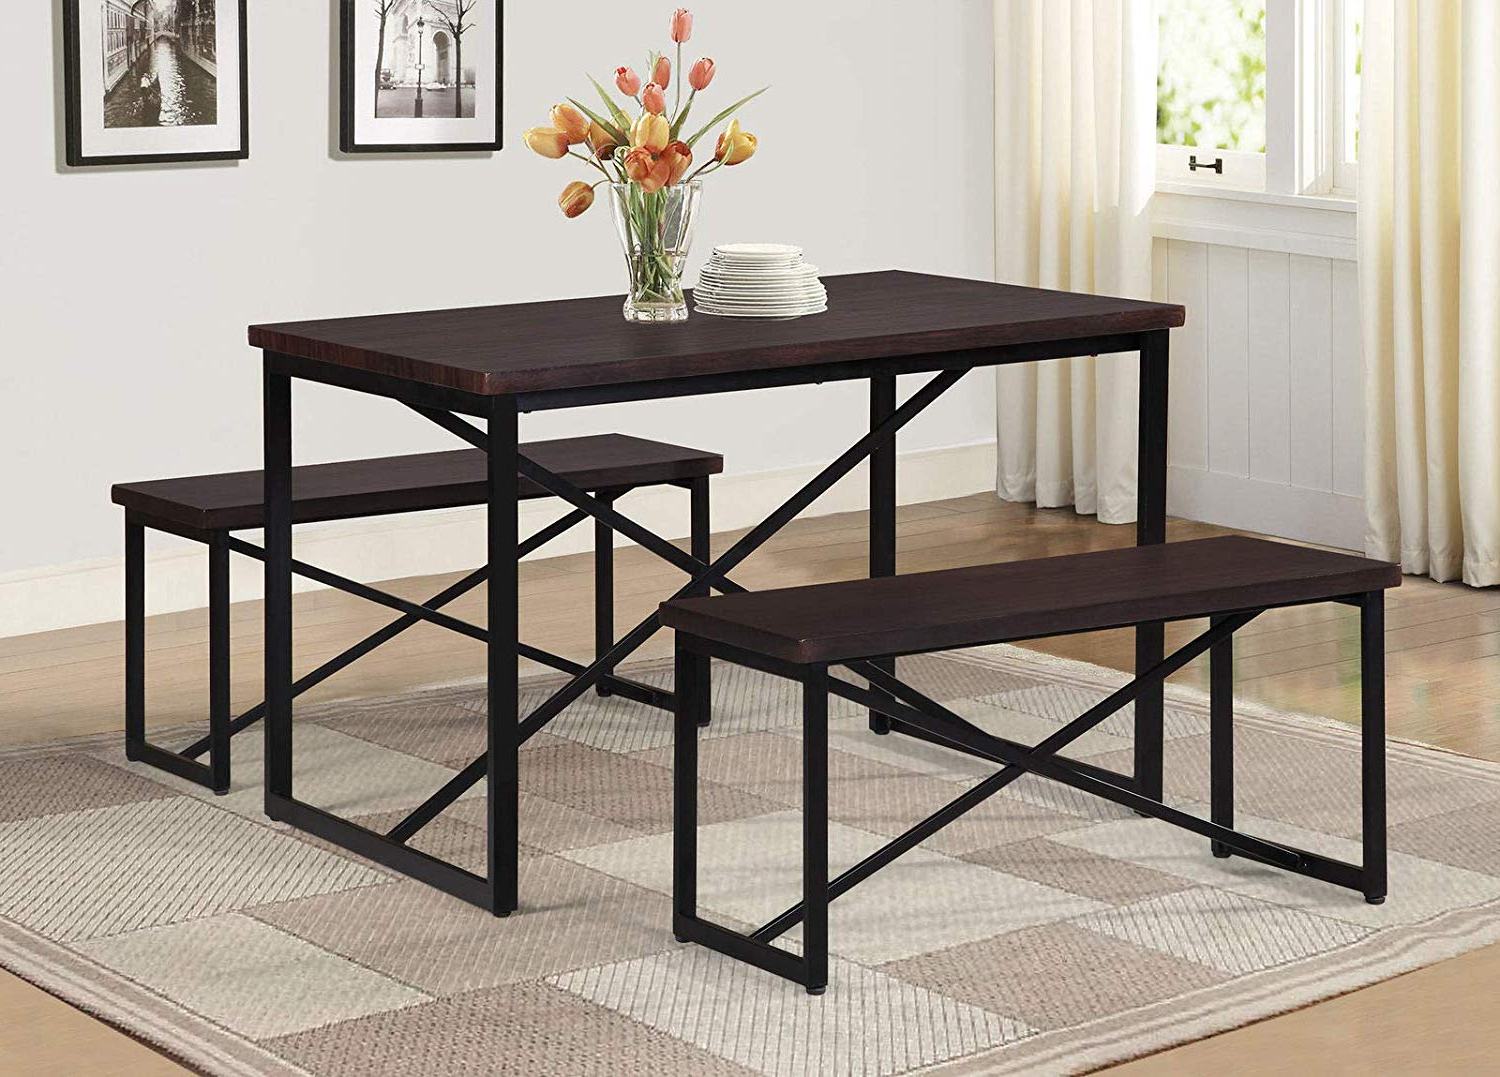 Trendy Partin 3 Piece Dining Sets Throughout Amazon – Wsb Williston Forge Bearden 3 Piece Dining Set – Brown (View 16 of 25)